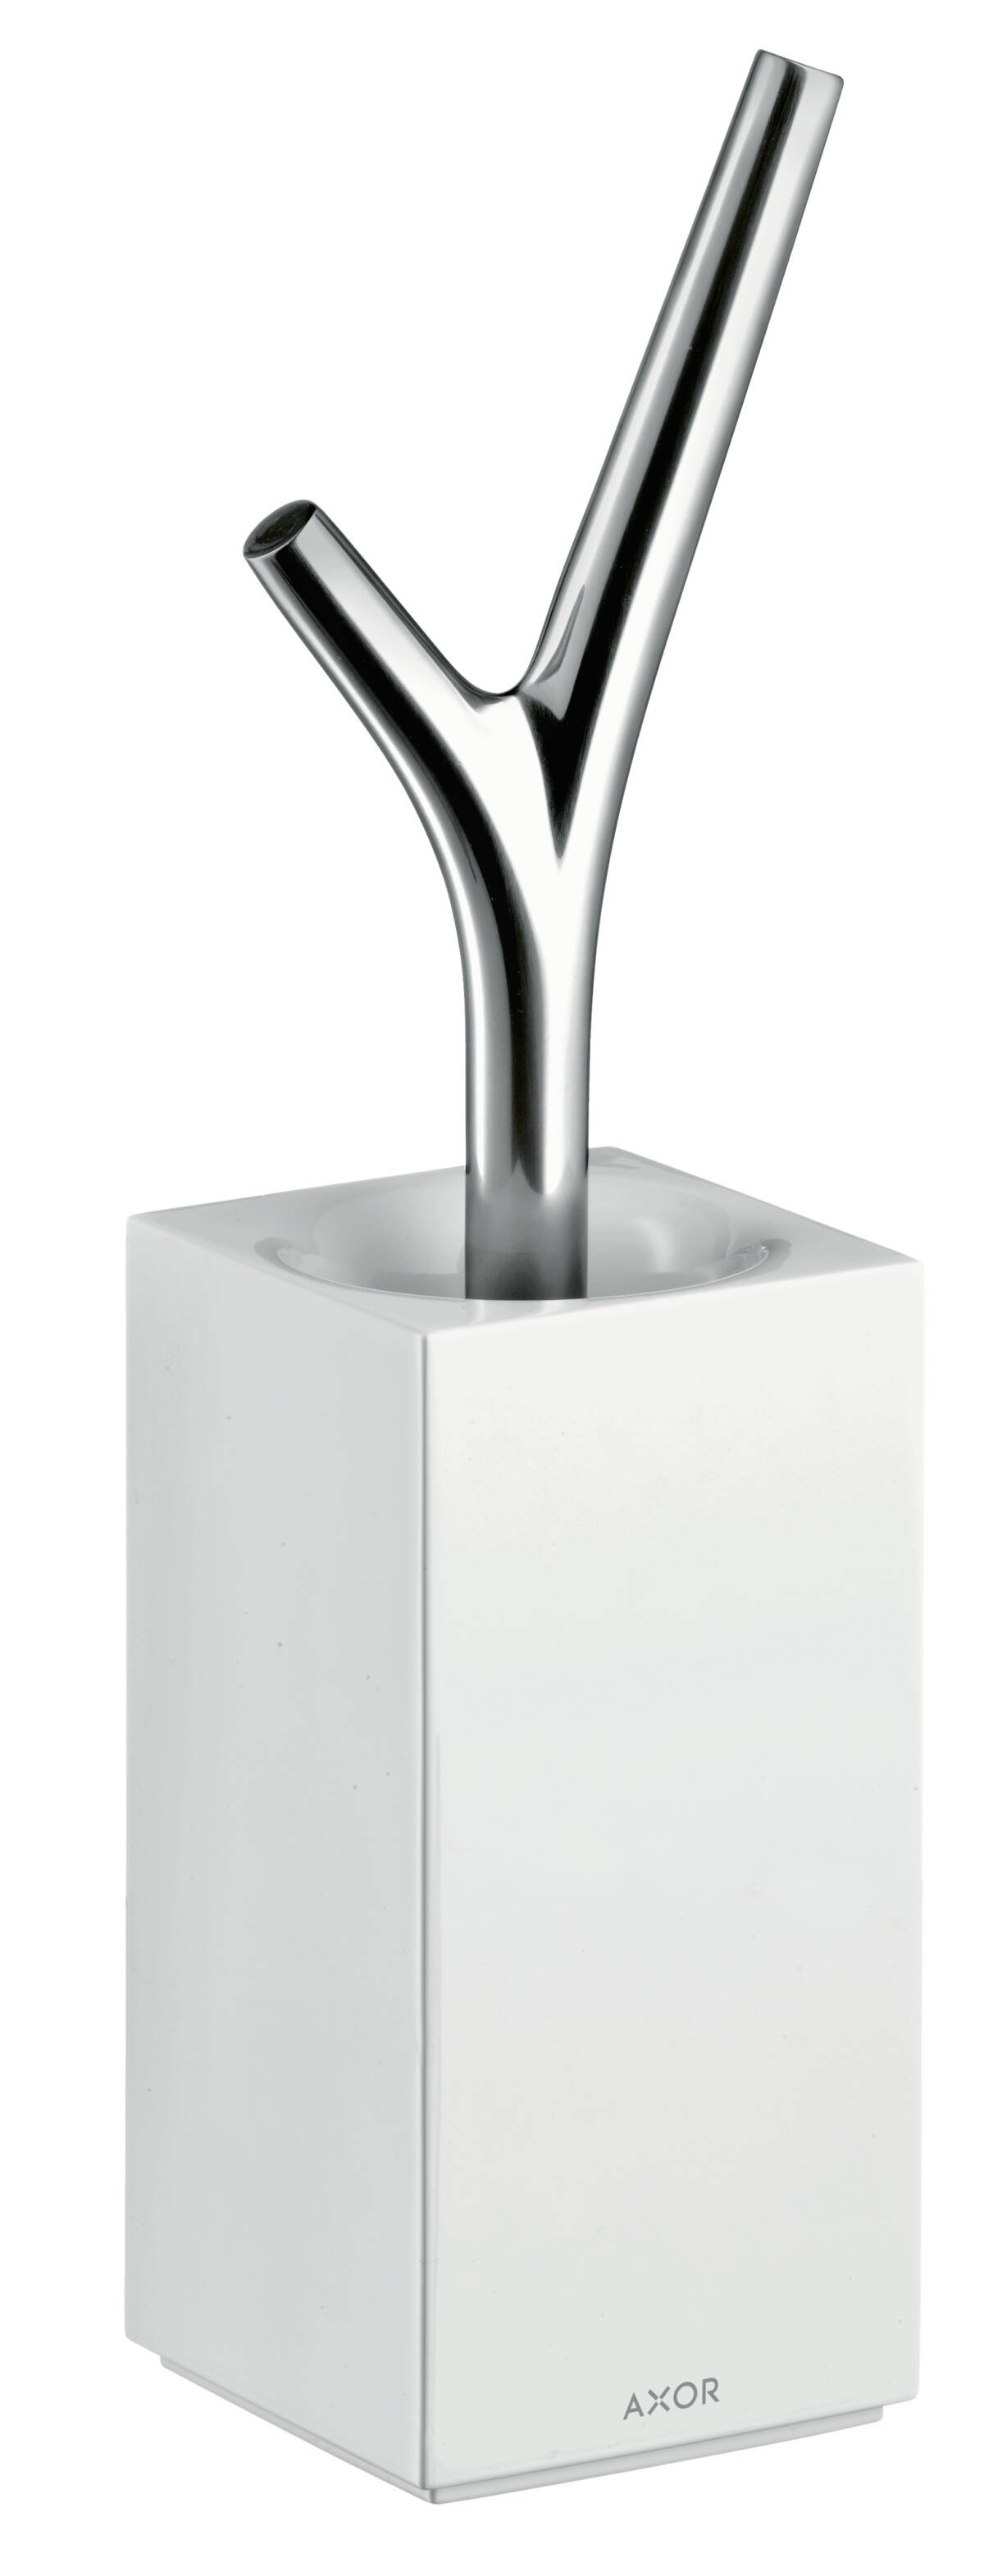 Toilet brush holder floor-standing, Chrome, 42235000